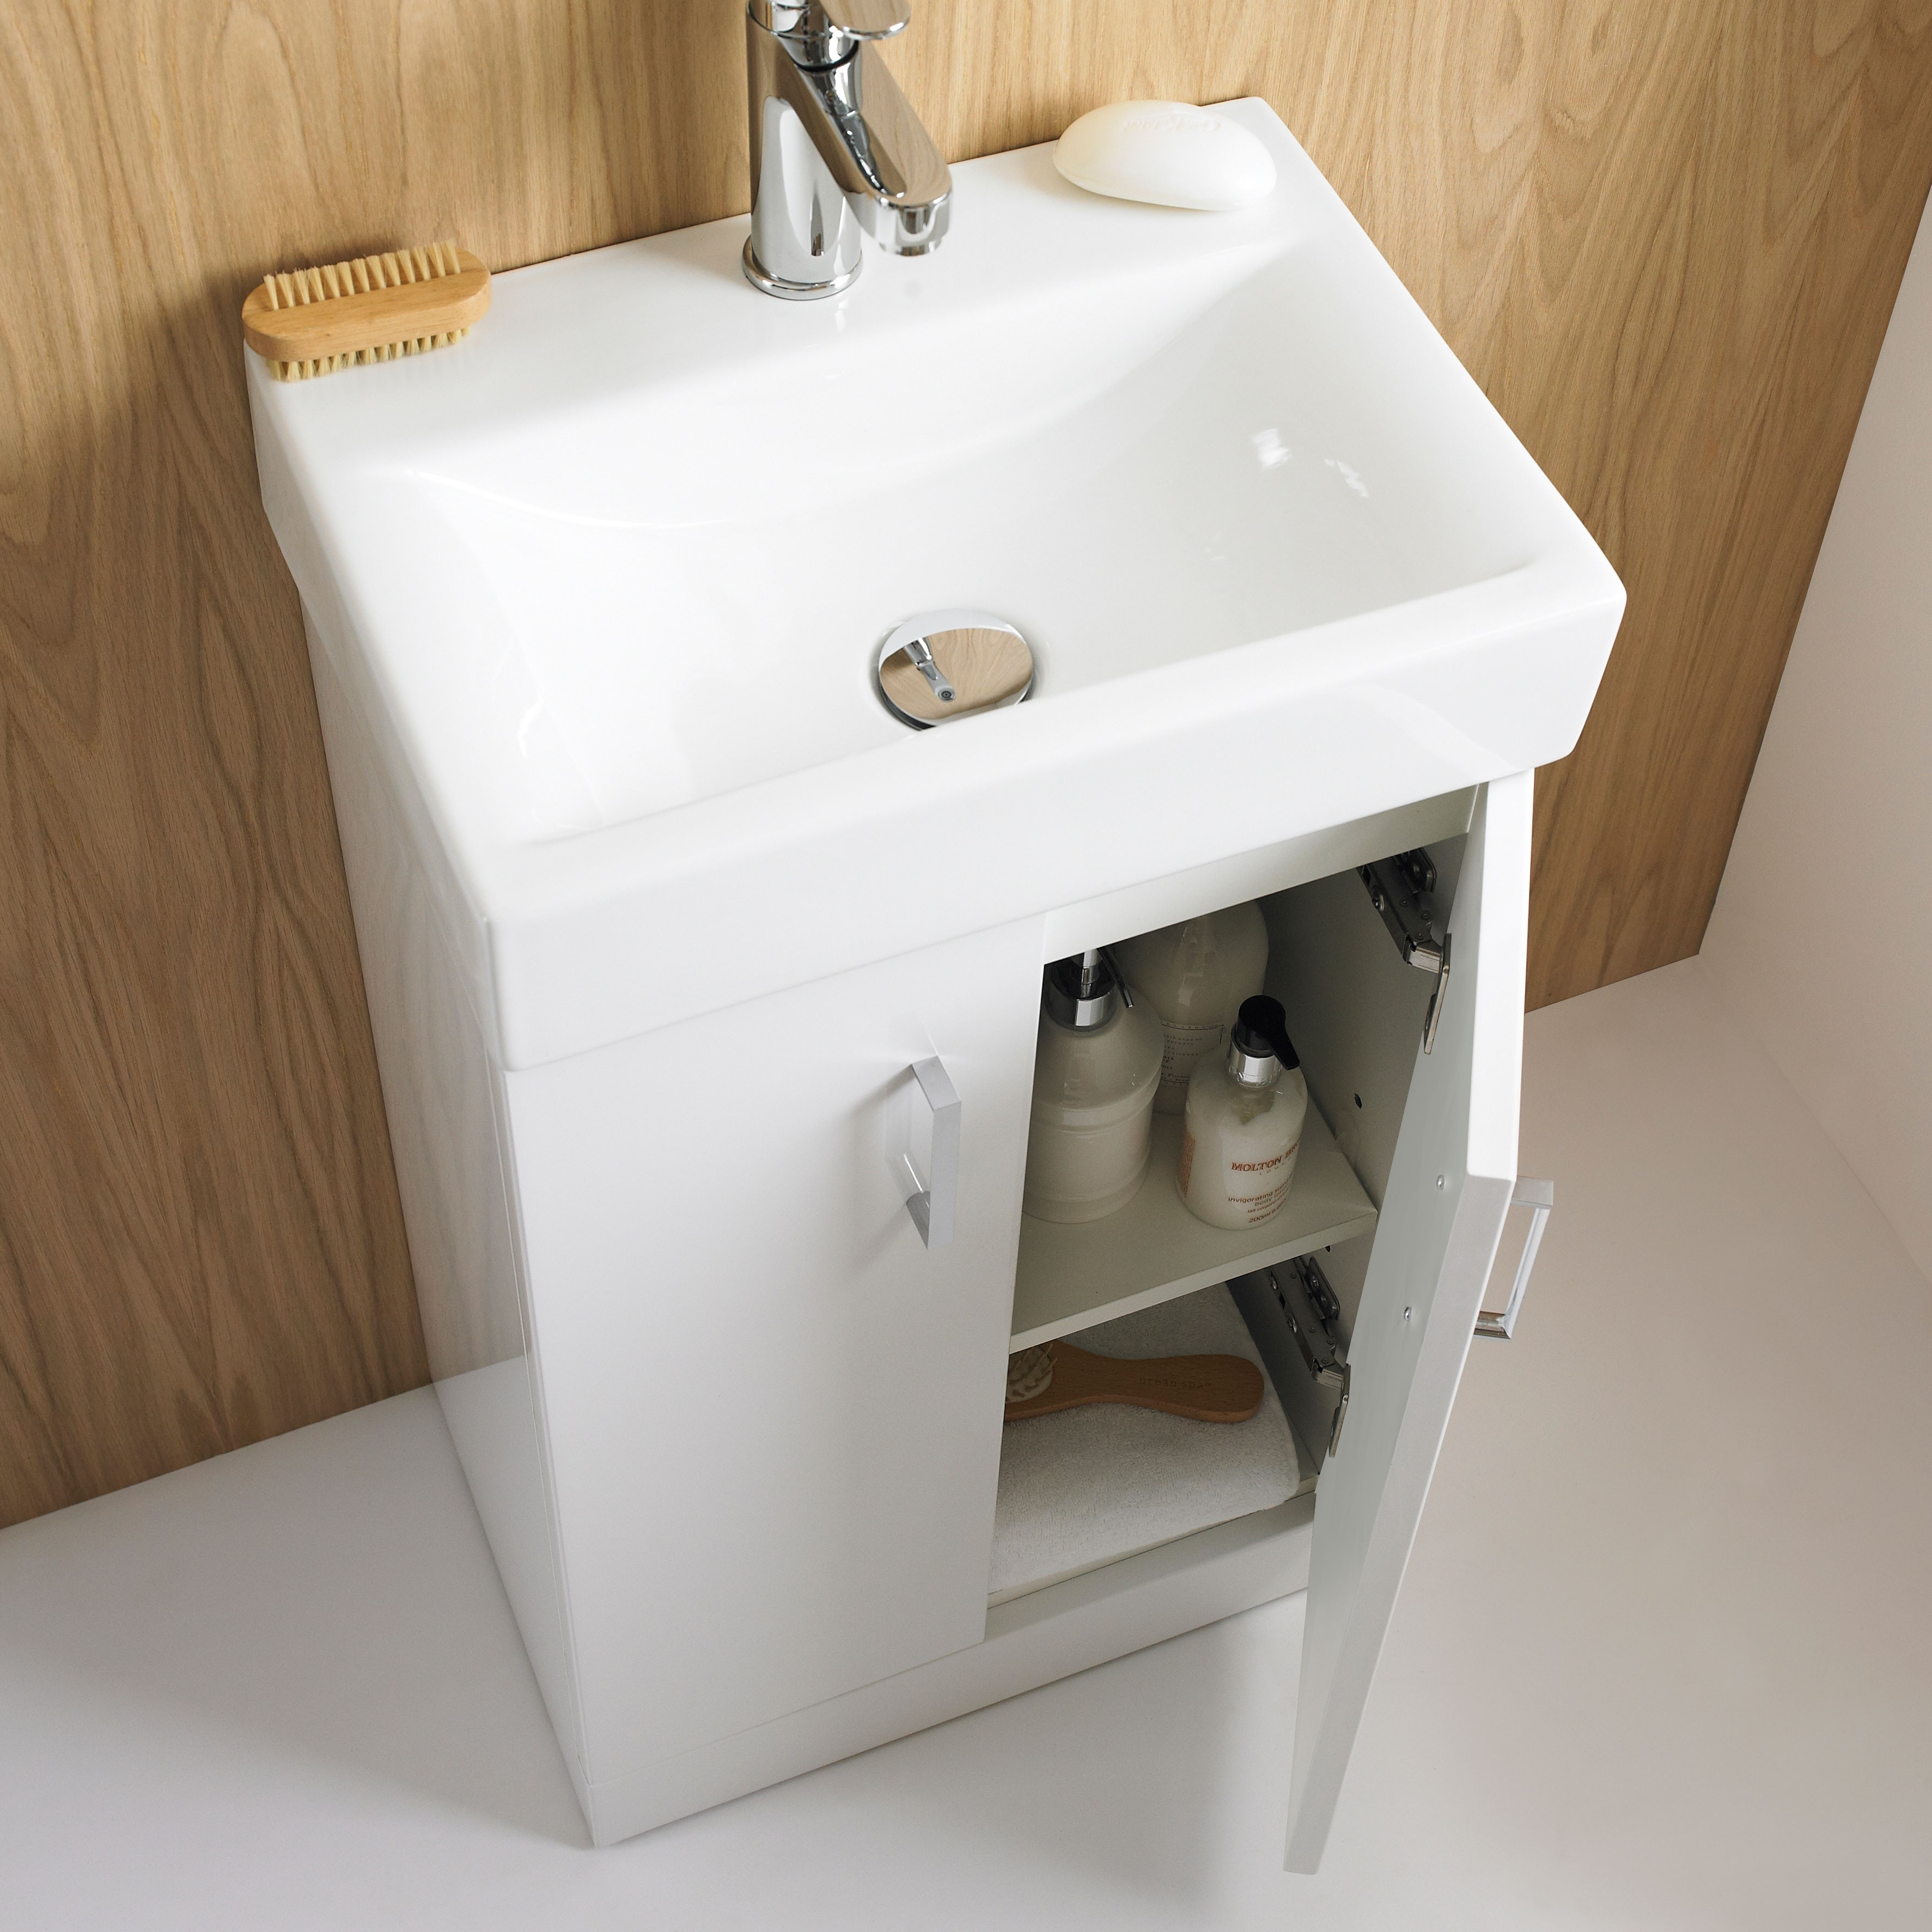 450mm Wide Bathroom Vanity Unit